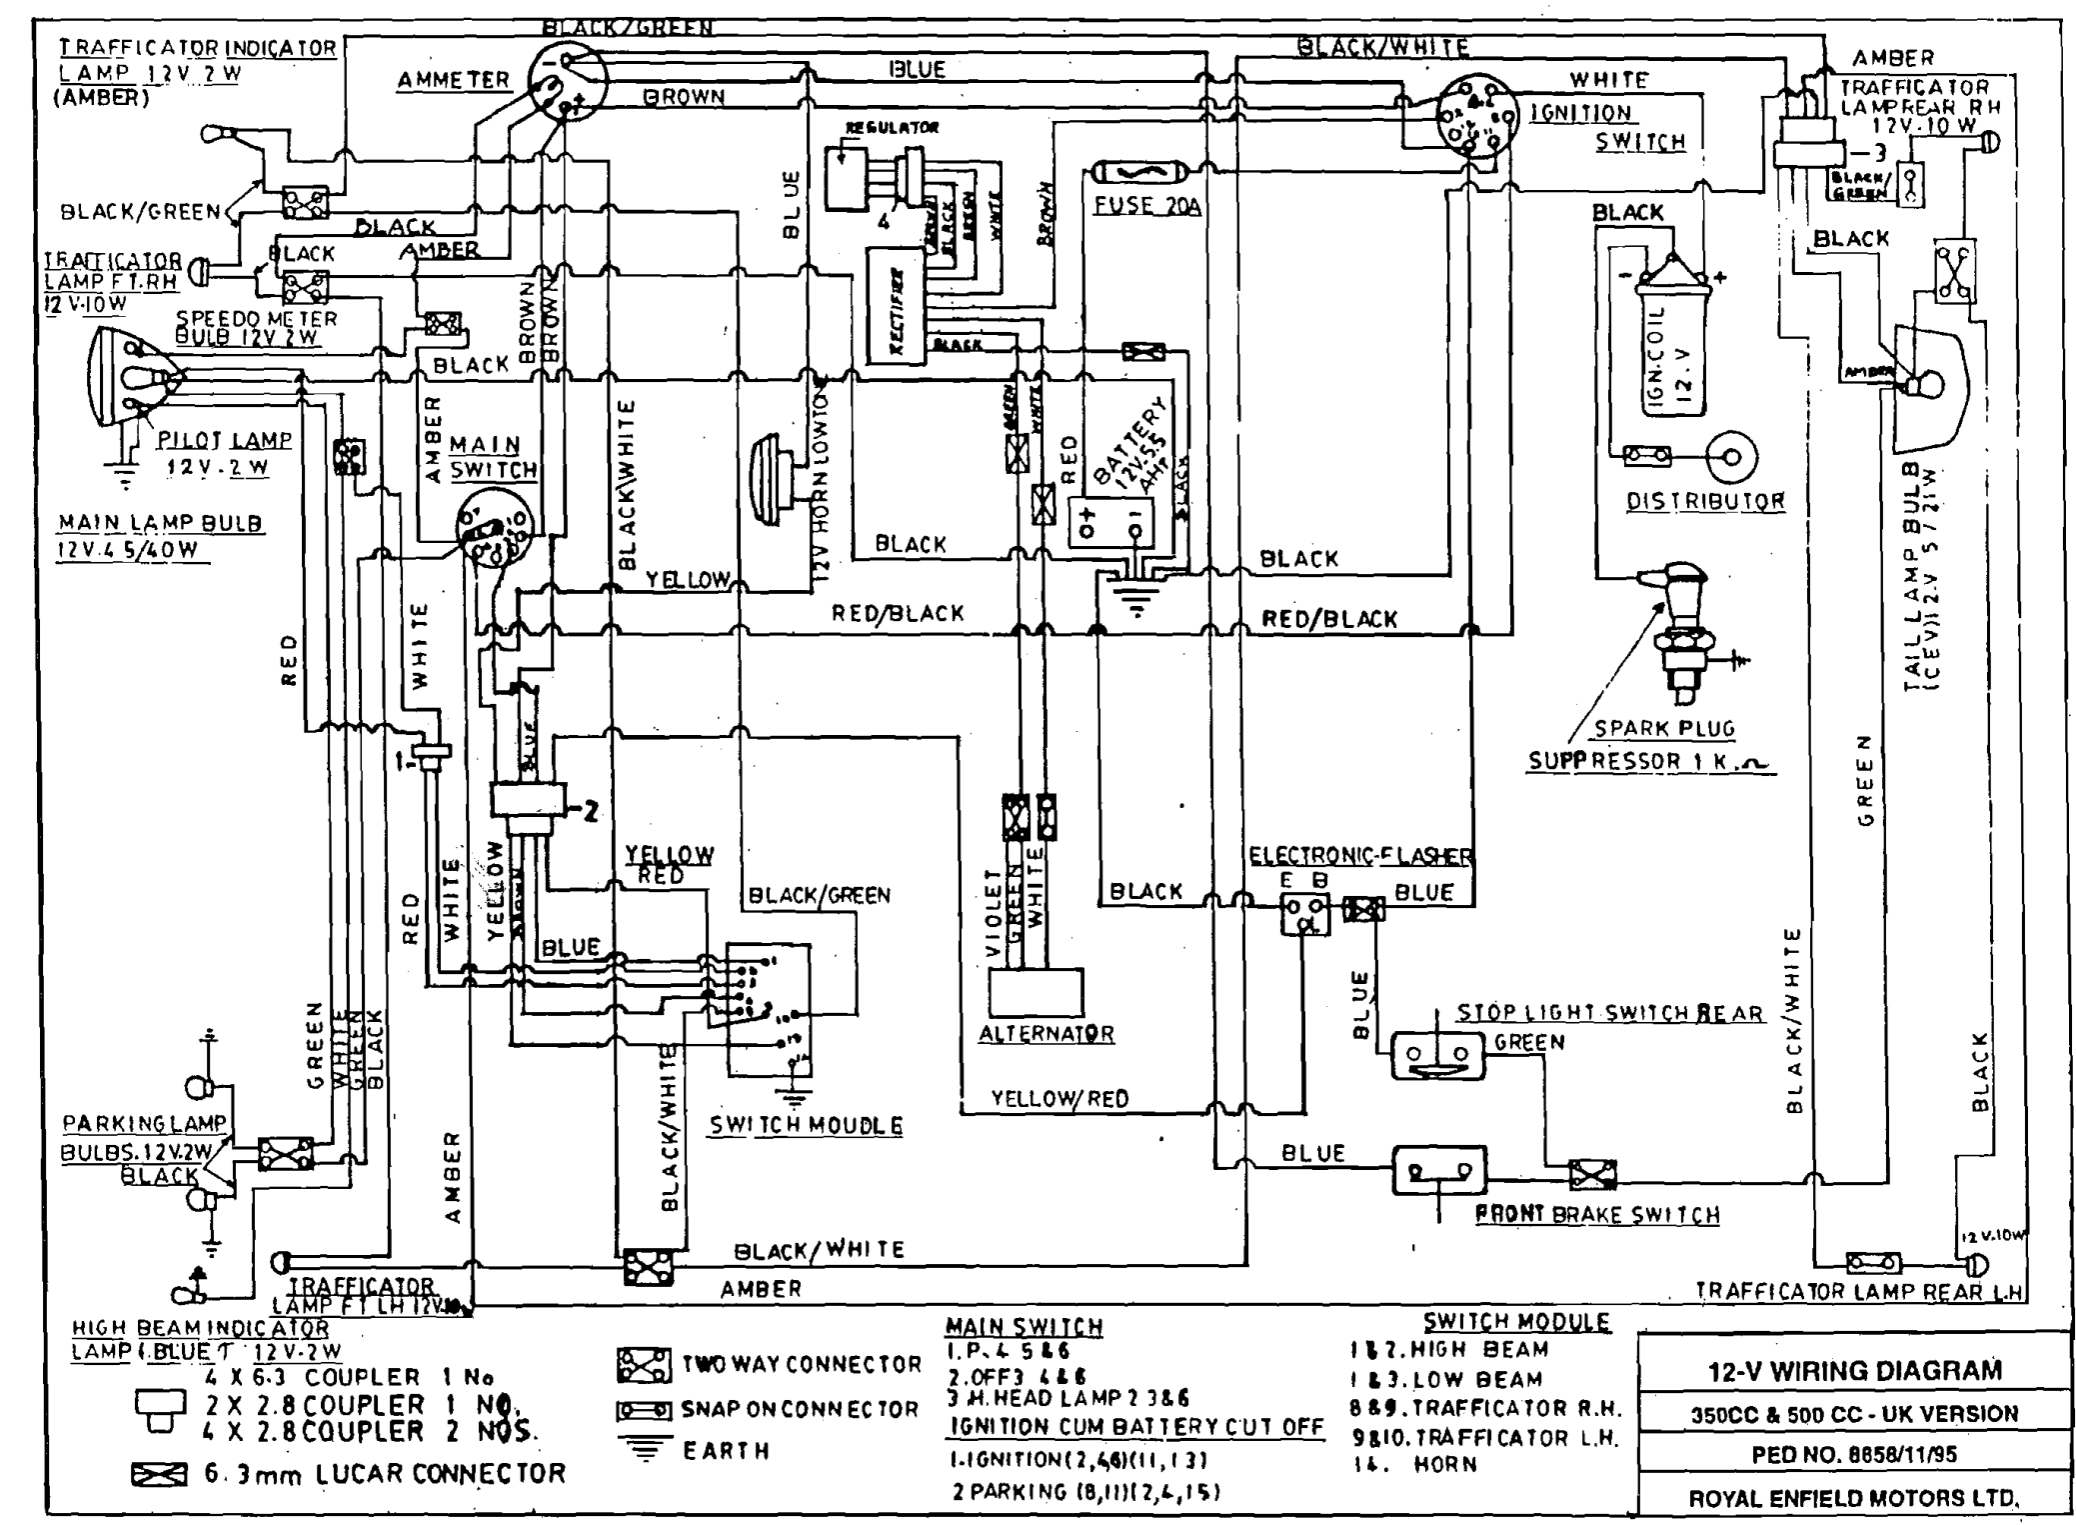 Royal Enfield Thunderbird 350 Wiring Diagram